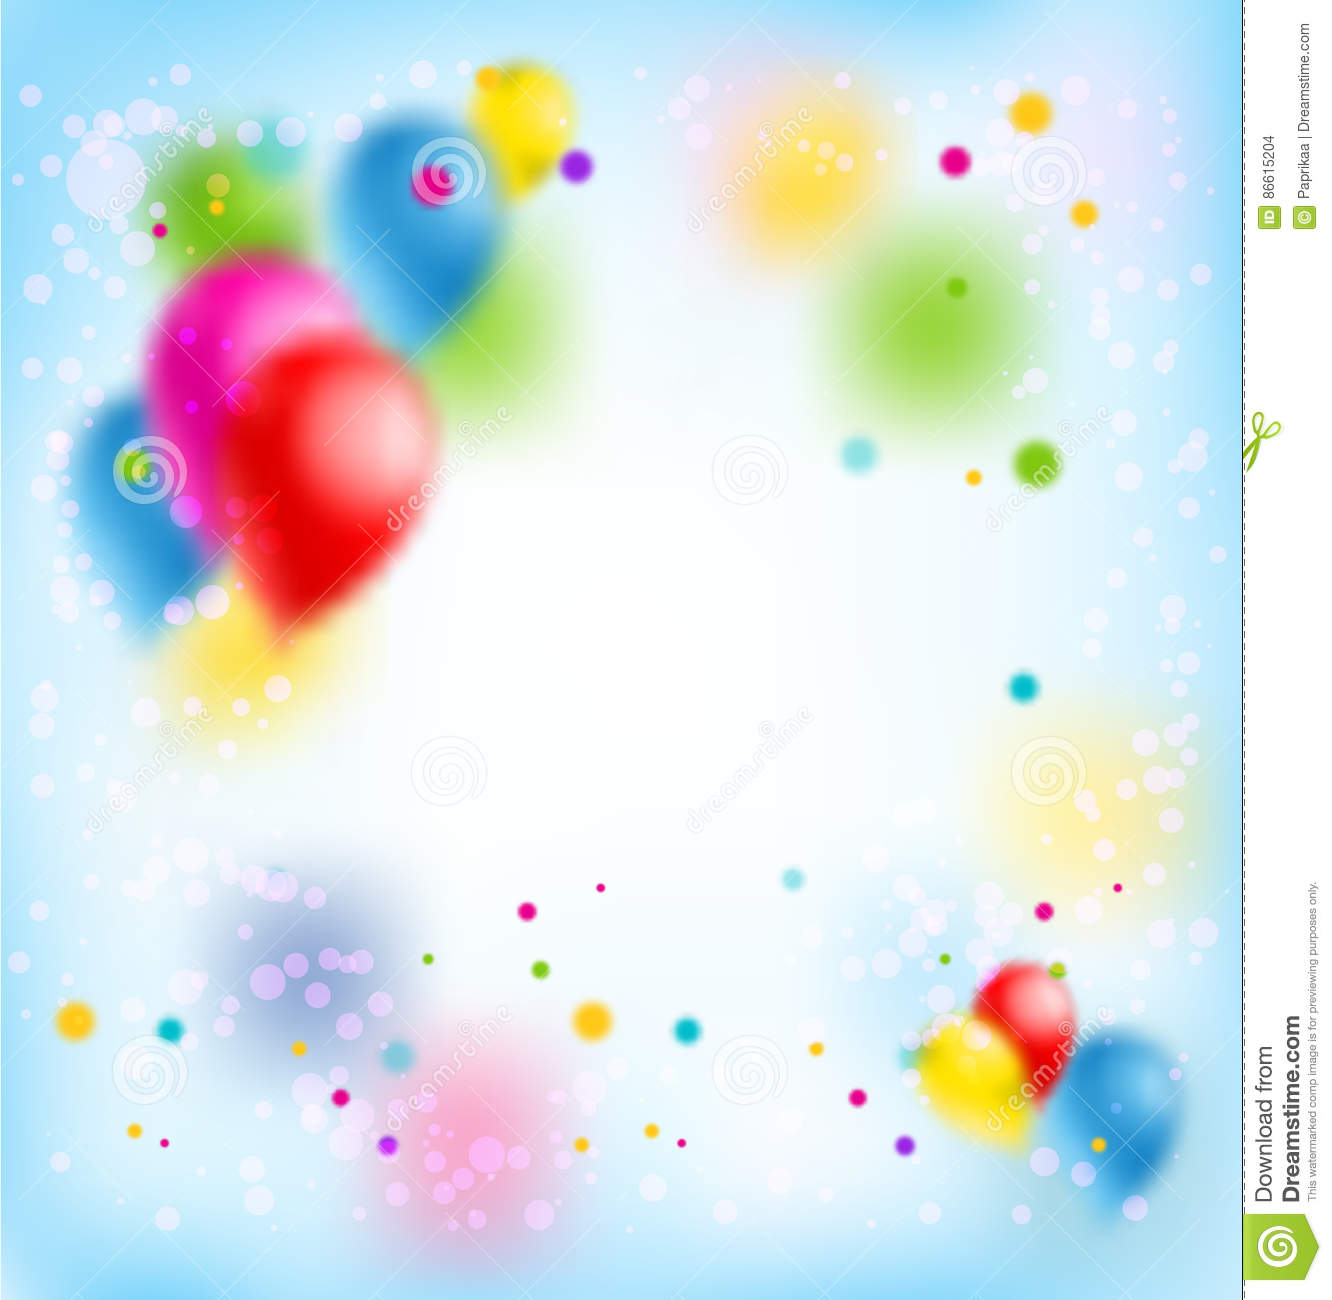 happy birthday sign template ; blur-happy-birthday-banner-holiday-template-design-ticket-leaflet-card-poster-background-balloons-86615204